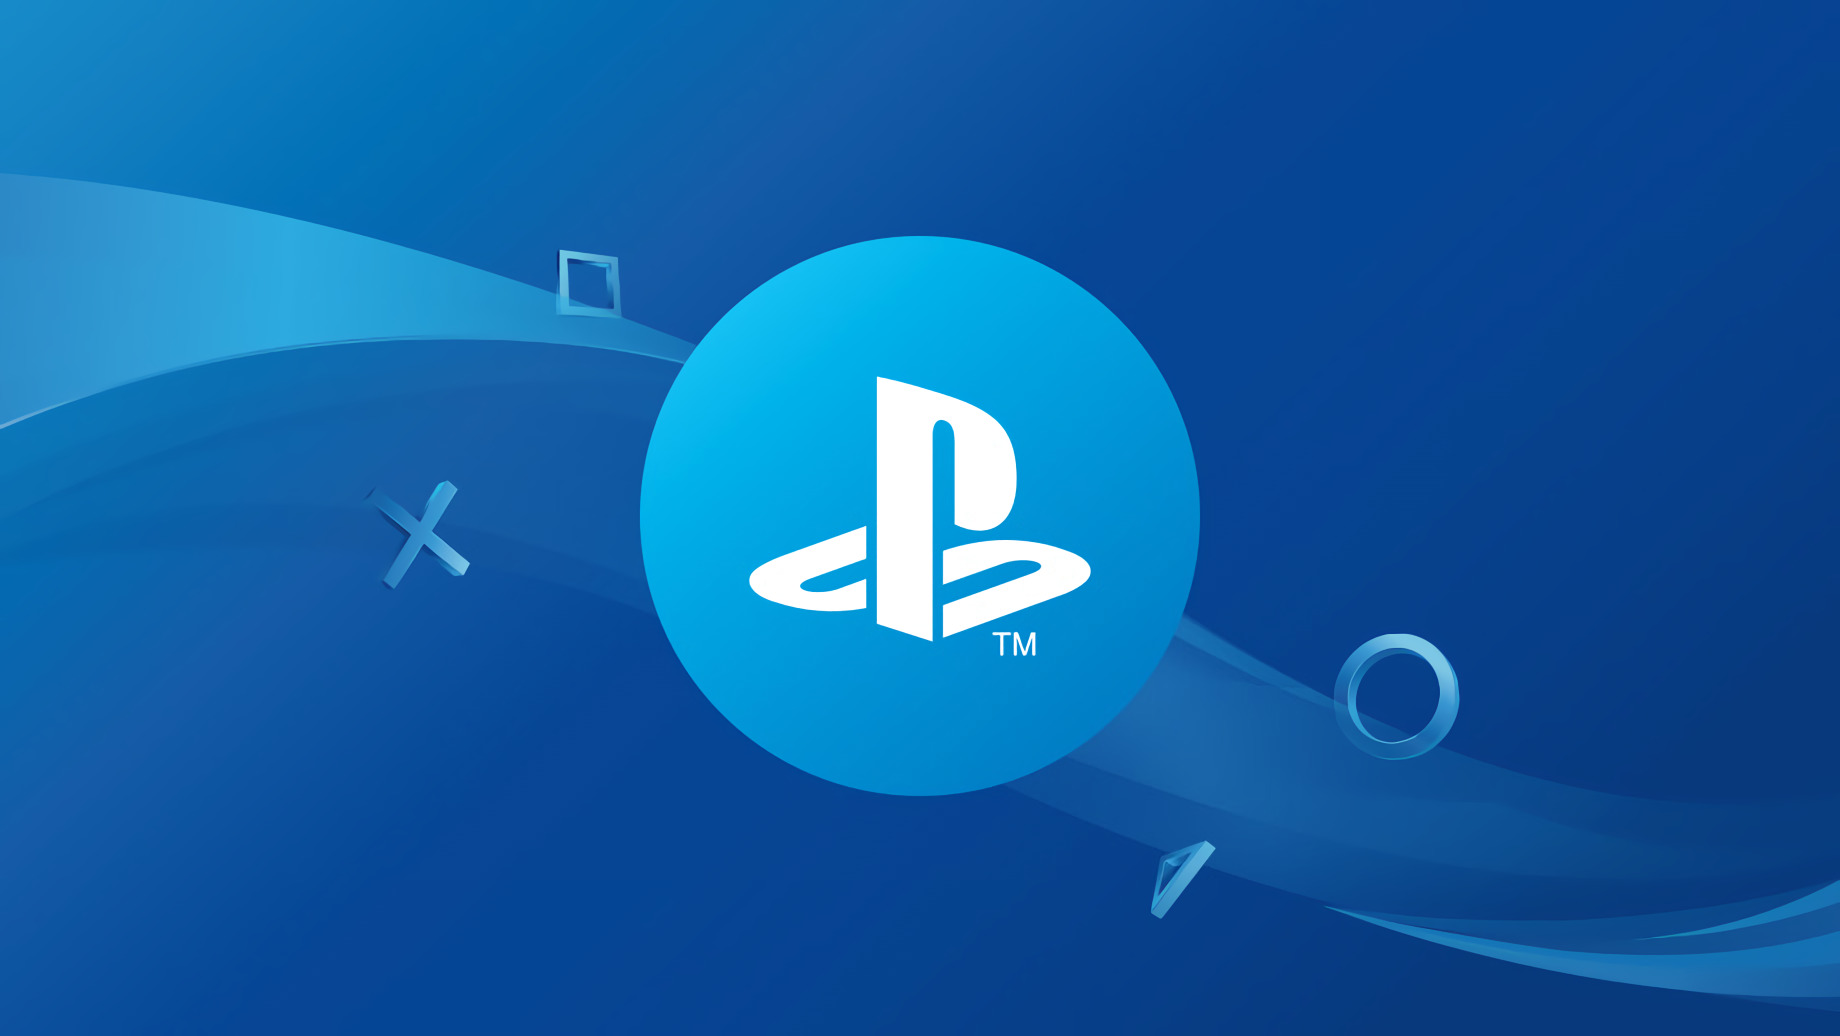 Sony announces partnership with Discord, acquires shares